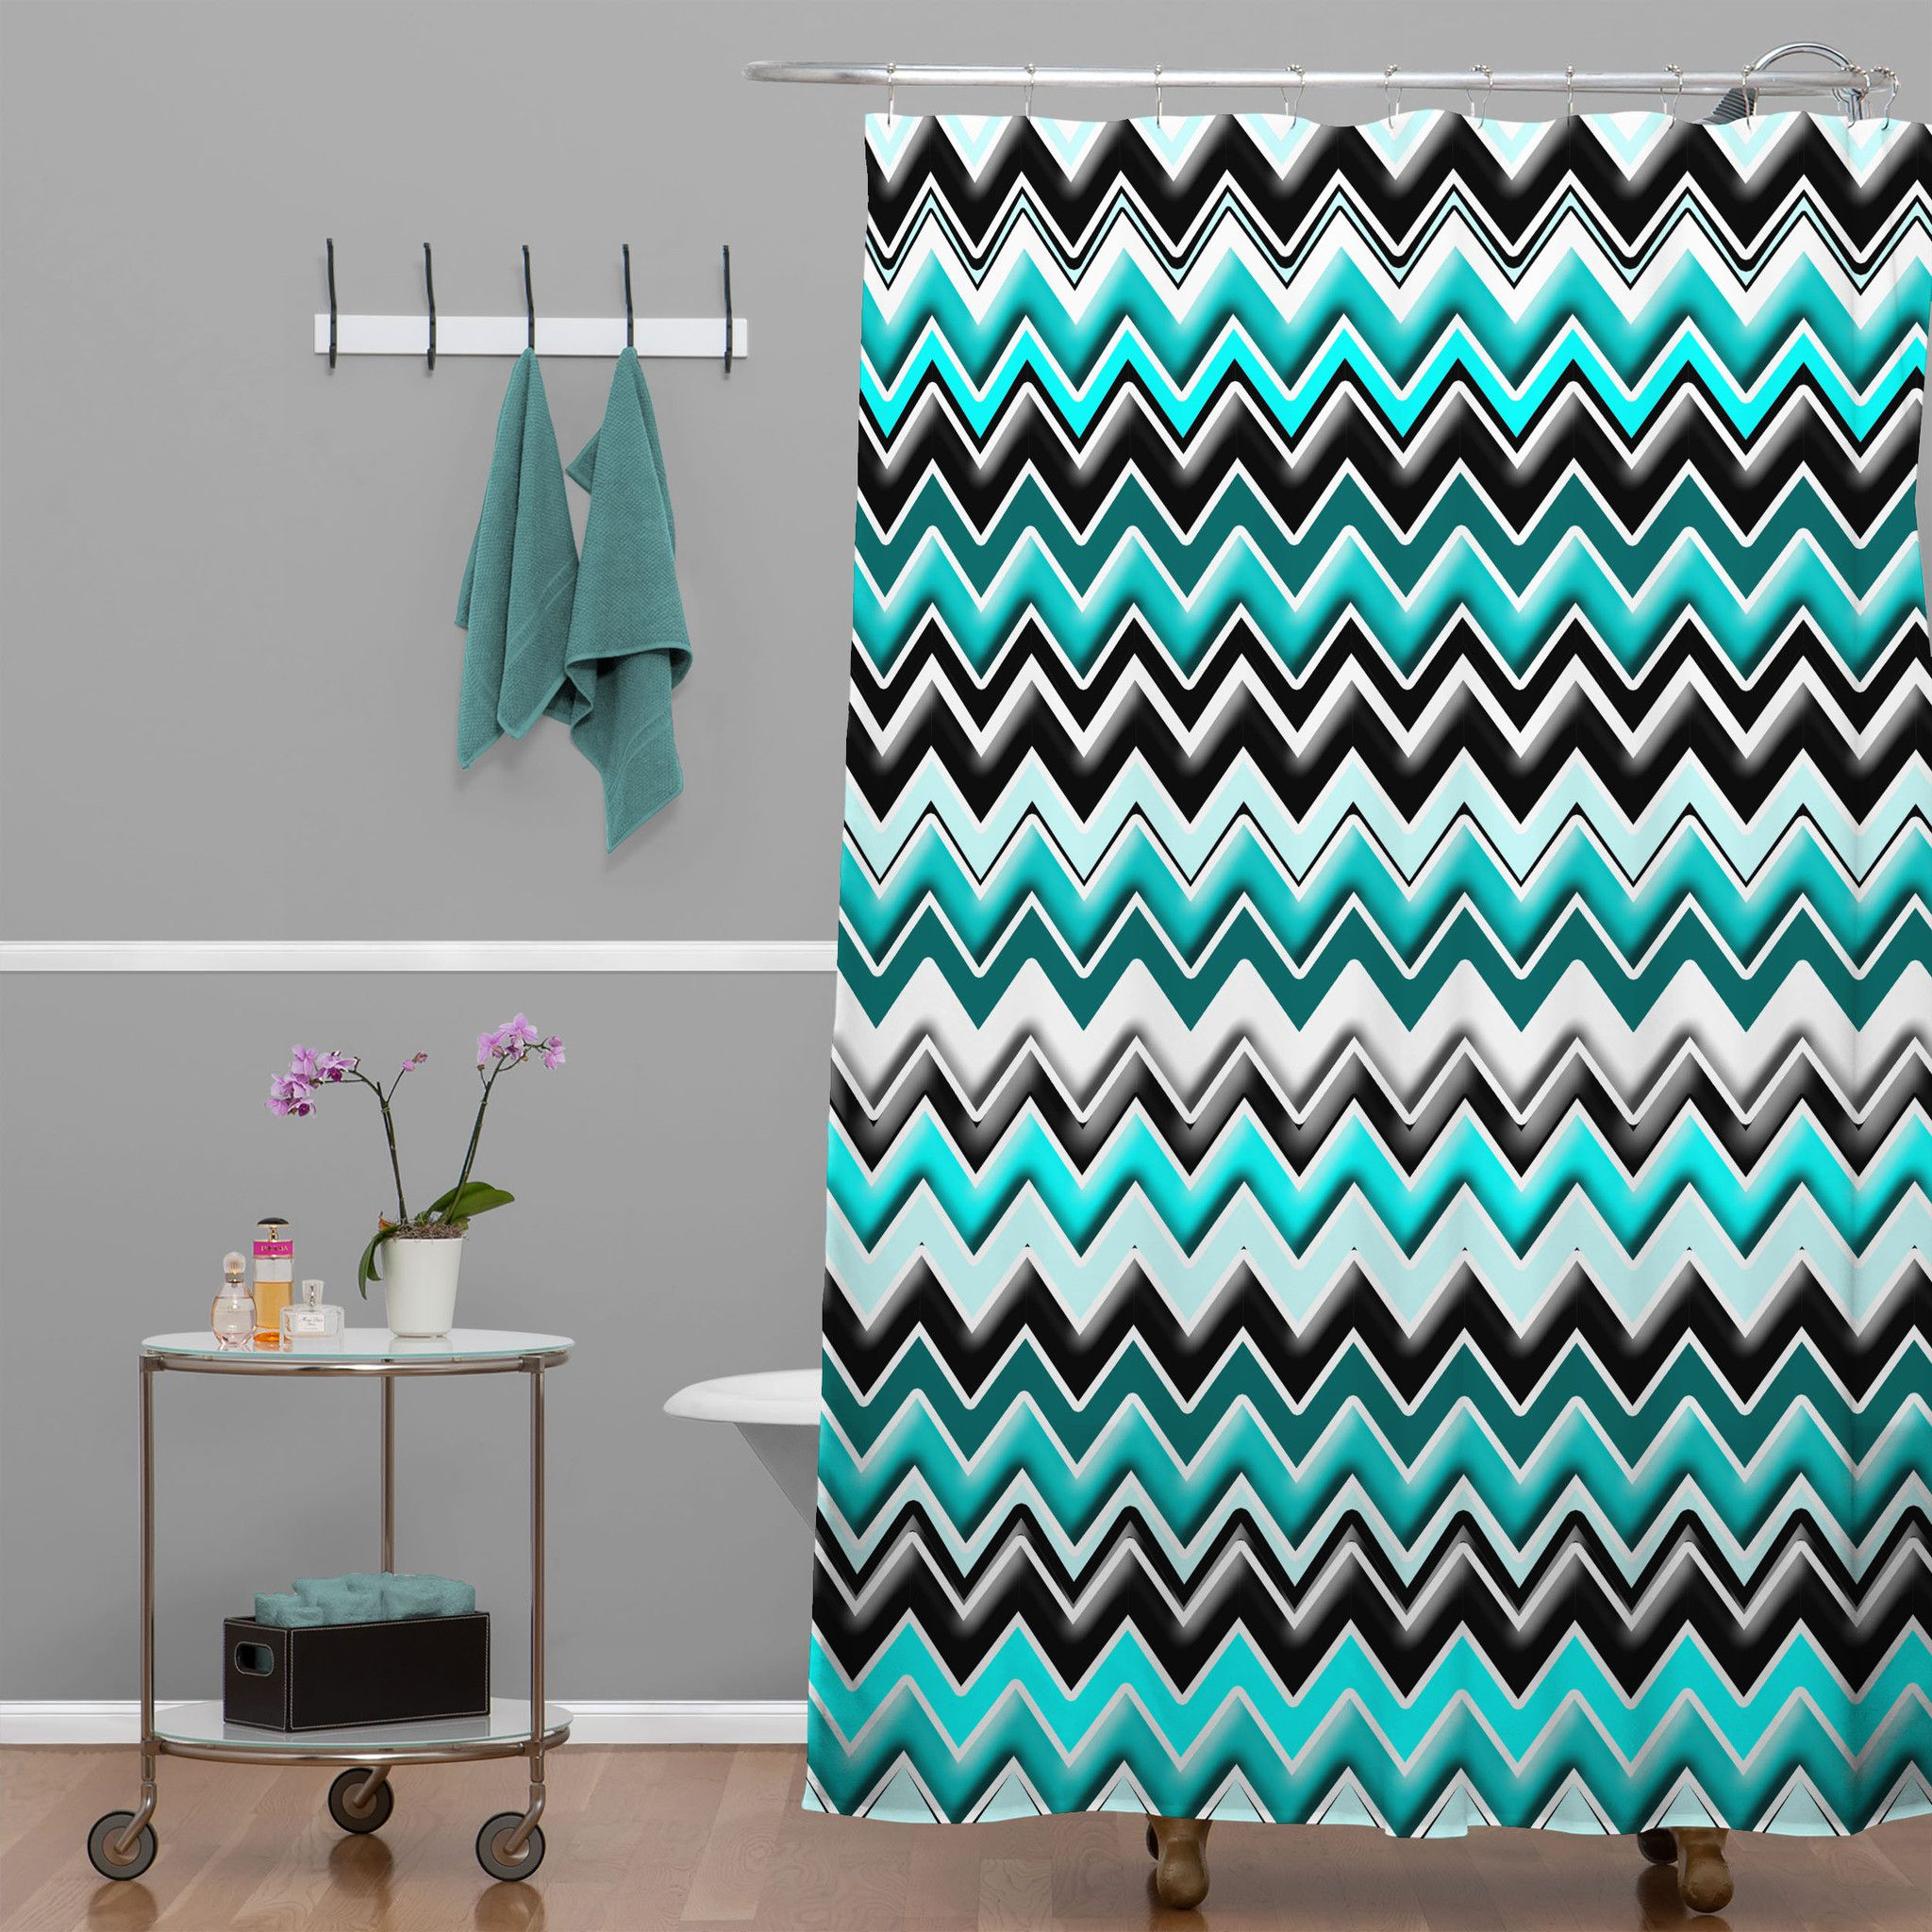 Curtains Chevron Pattern Images About The Most Updated Design Of within dimensions 2048 X 2048